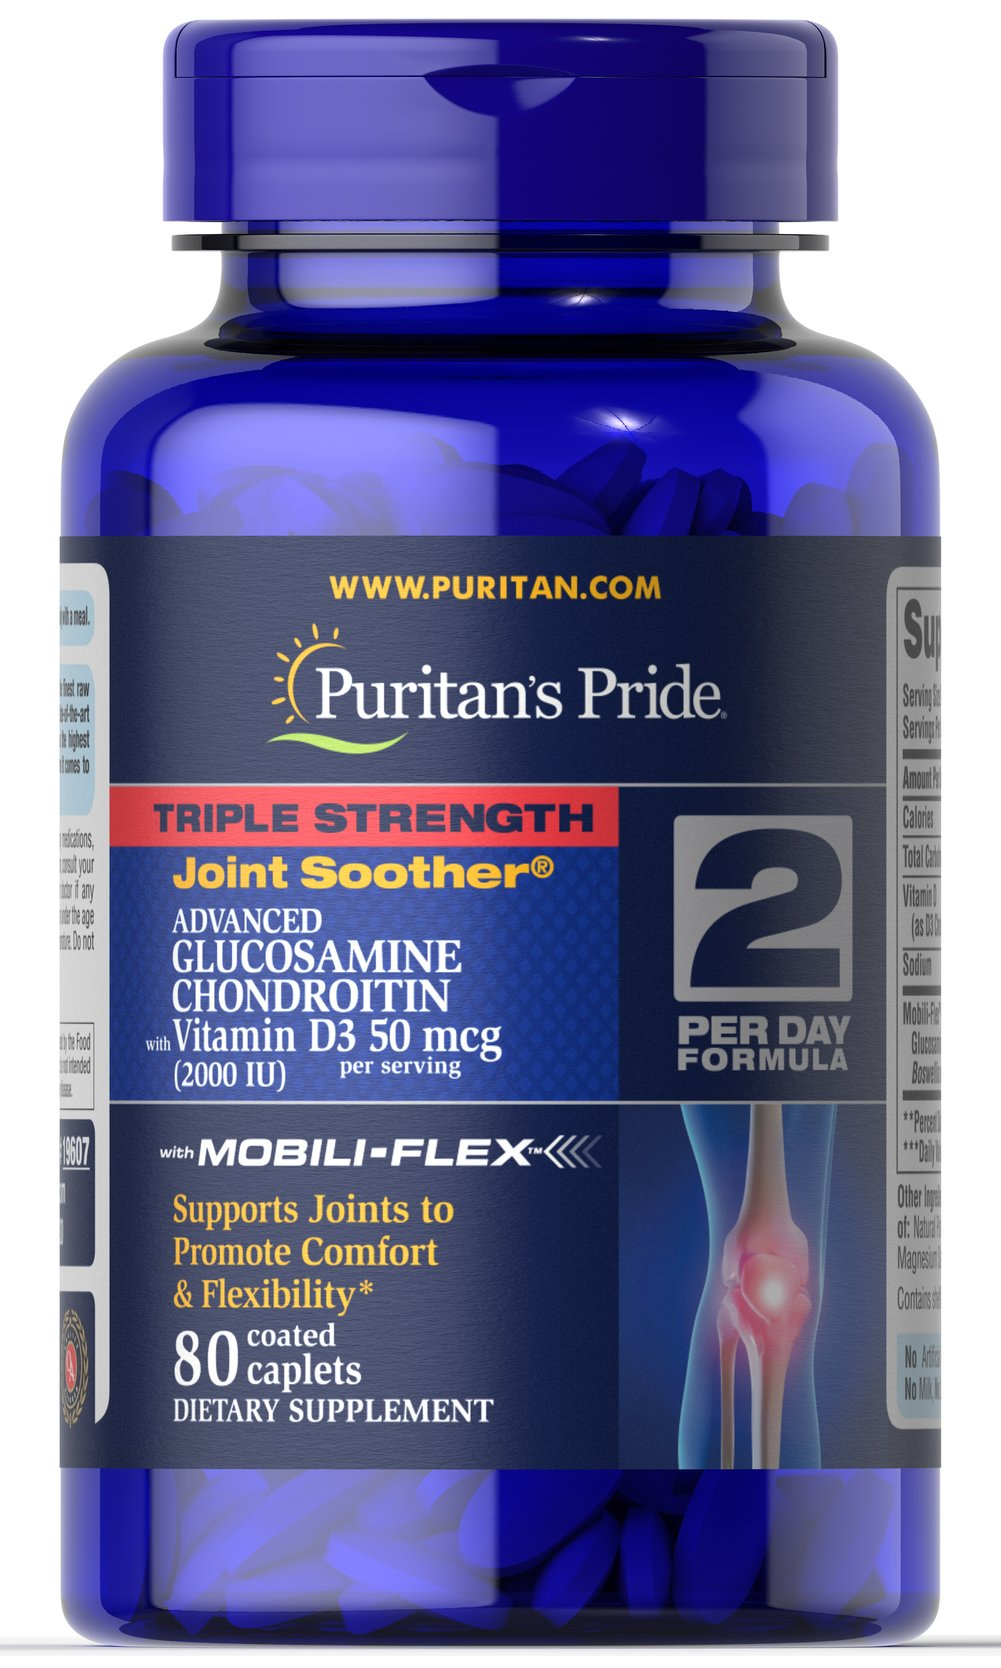 Triple Strength Glucosamine Chondroitin with Vitamin D3  <p>Triple strength formula - one serving is only two caplets per day</p>   <p>Contains Mobili-Flex™, a proprietary blend that lubricates joints to promote comfort and flexibility**</p>   <p>Glucosamine HCL, Chondroitin Sulfate and Boswellia Serrata Extract work together to support joint and cartilage health**</p>   <p>Added benefit of 2000 IUs of Vitamin D3 to assist in the absorption of